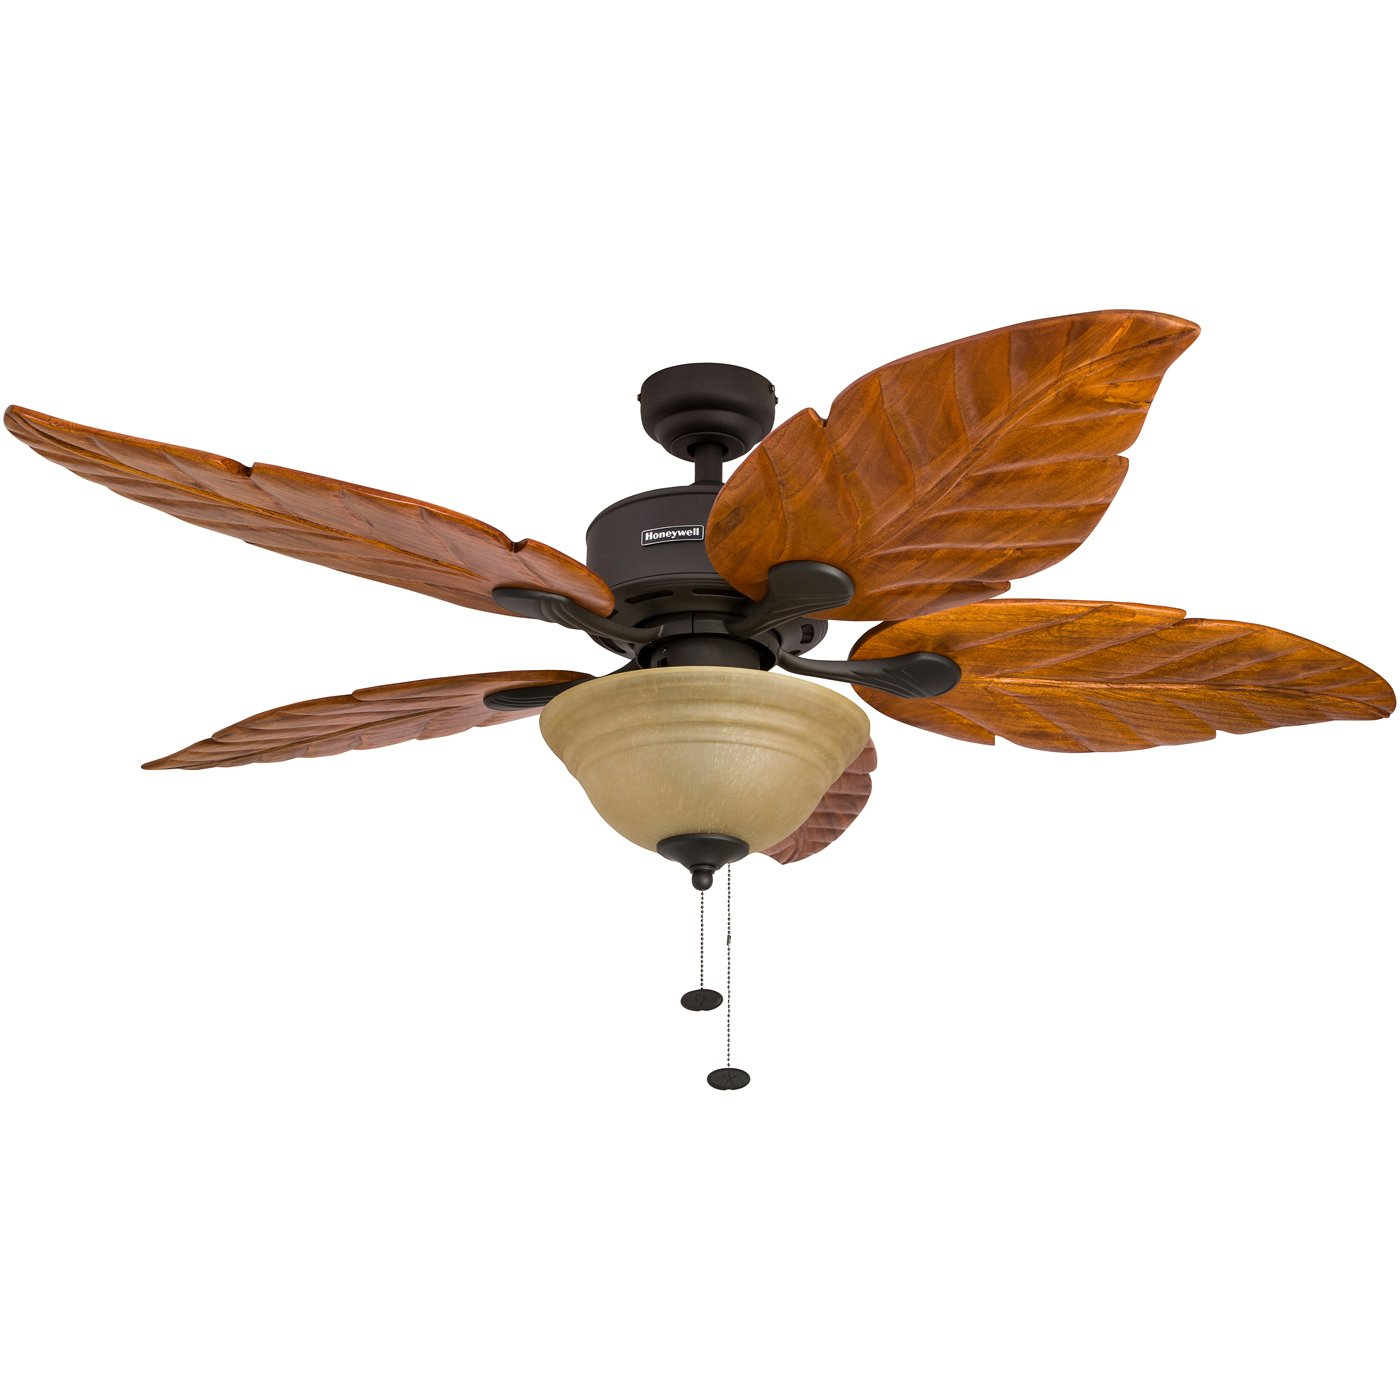 Honeywell Sabal Palm 52 Inch Tropical Ceiling Fan with Sunset Bowl Light Five Hand